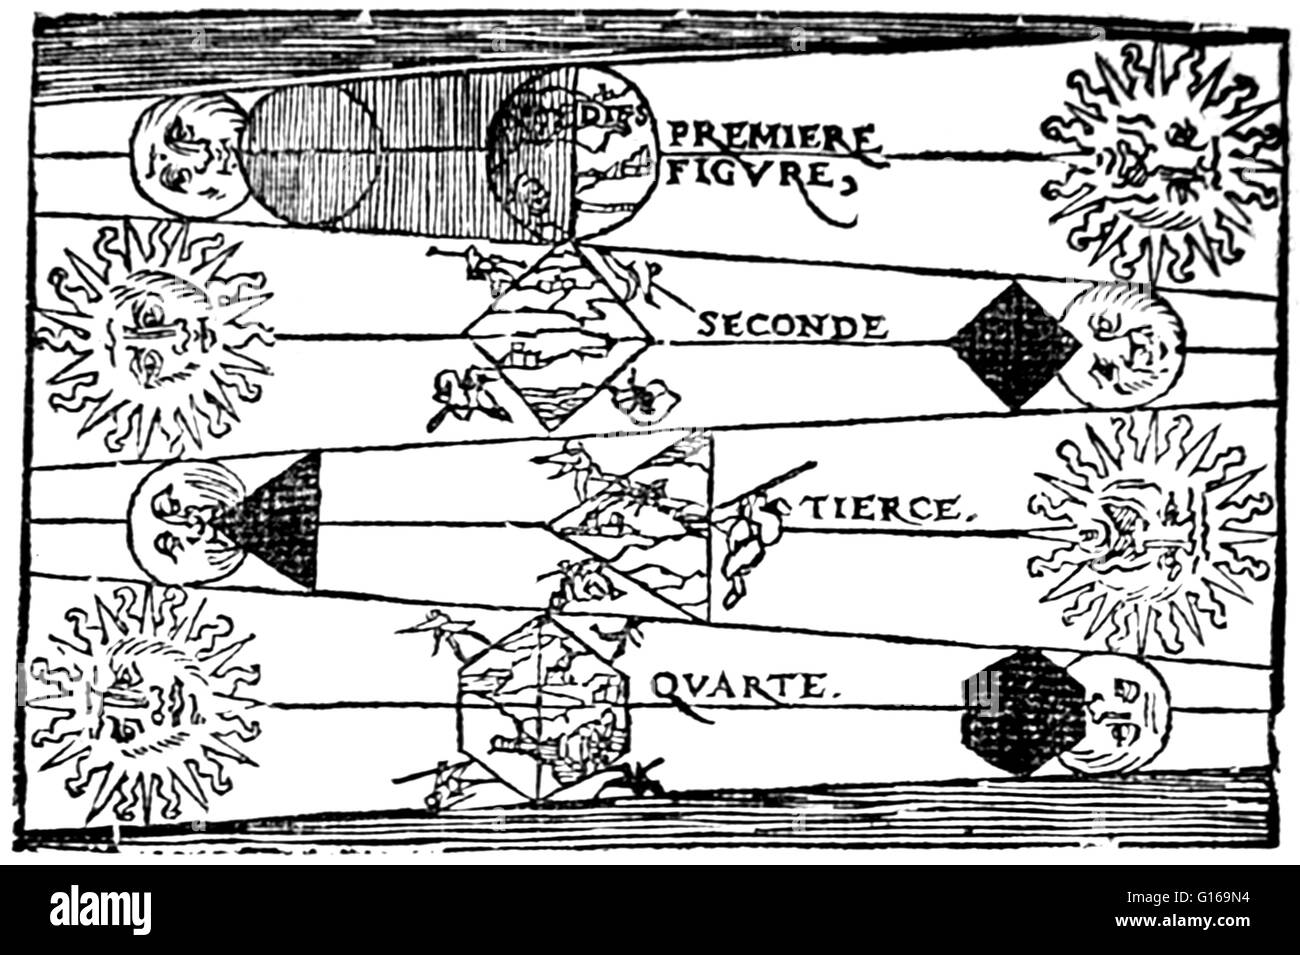 Illustration from Petrus Apianus', La cosmographie (1551) showing proof for the sphericity of the earth by observing - Stock Image